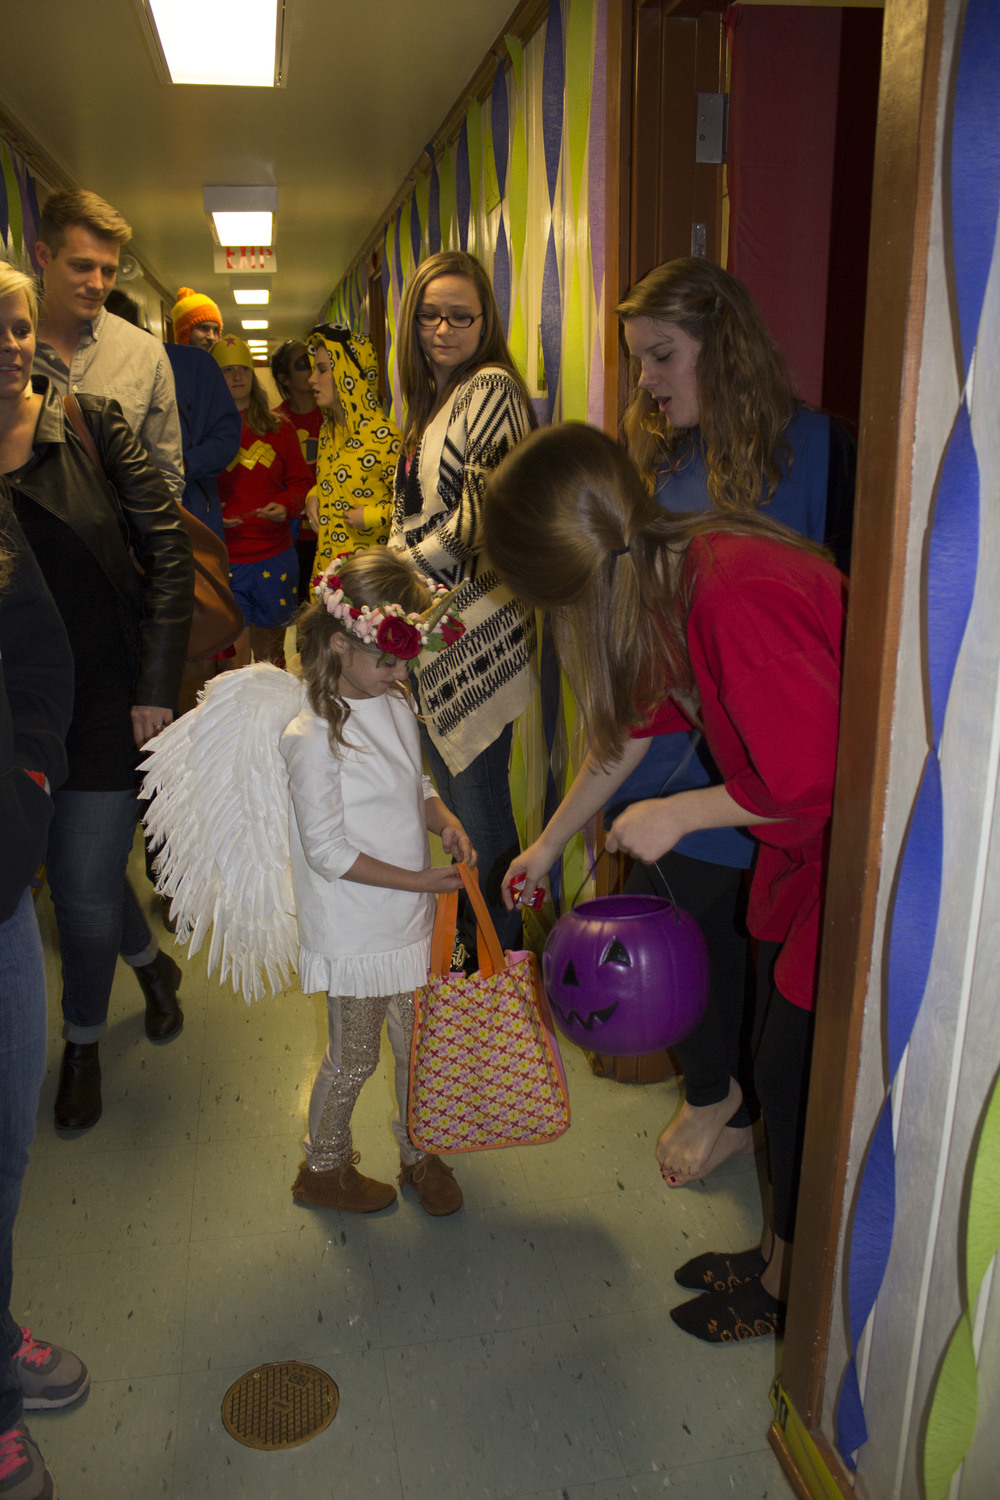 Sophomores Sarah Wells and Amy Coleman hand out candy to the kids passing down their hall.